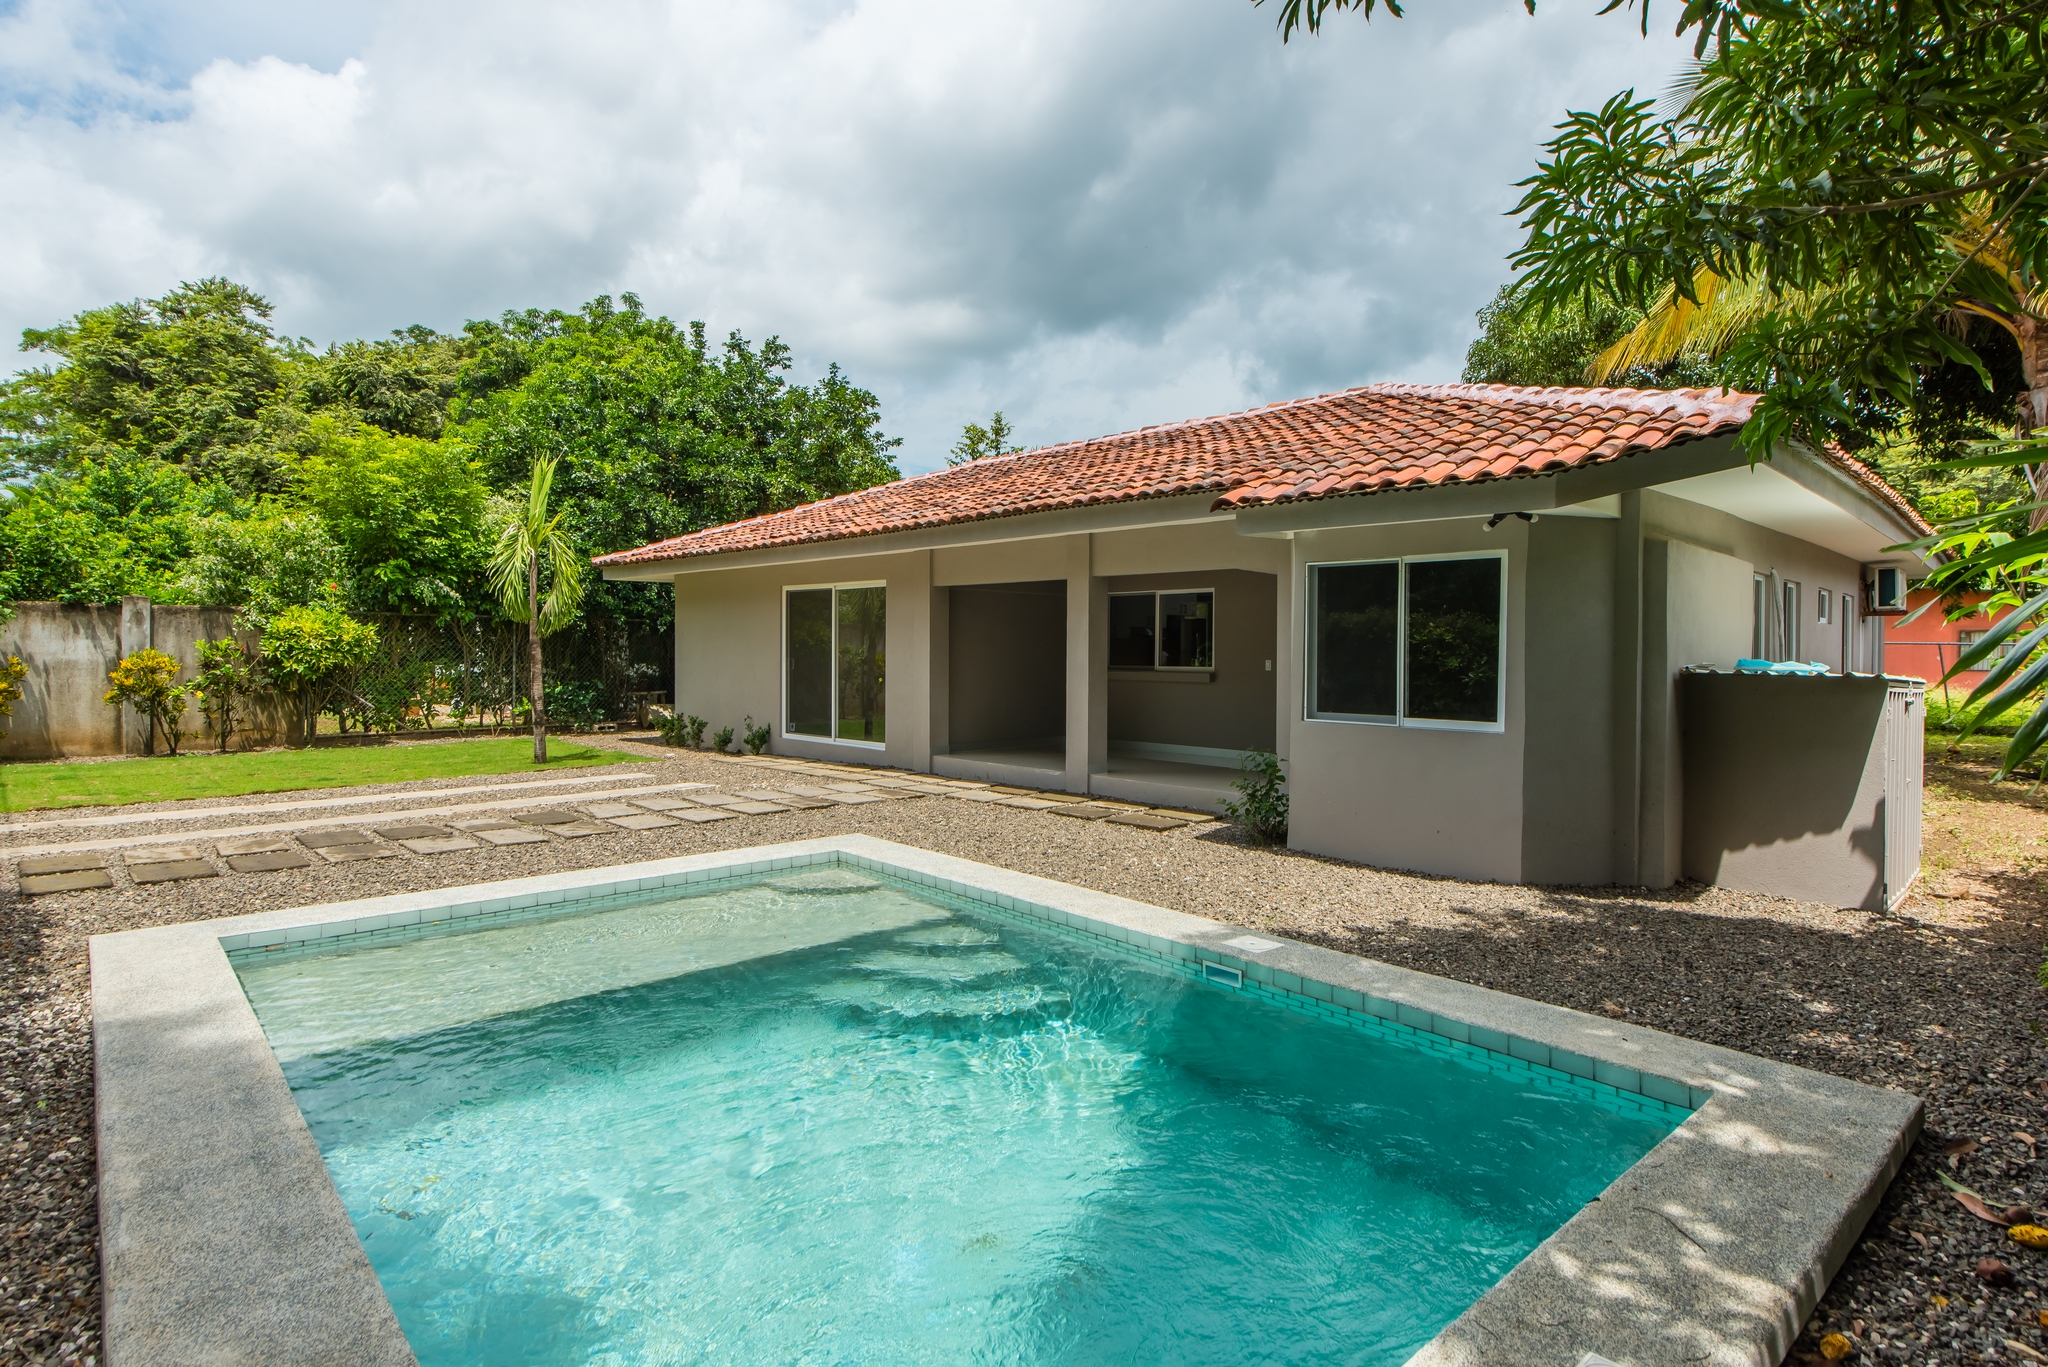 Casa Tucan-Home close to the beach! Fully Furnished 3 bedroom 3 bath- Surfside Estates, Playa Potrero